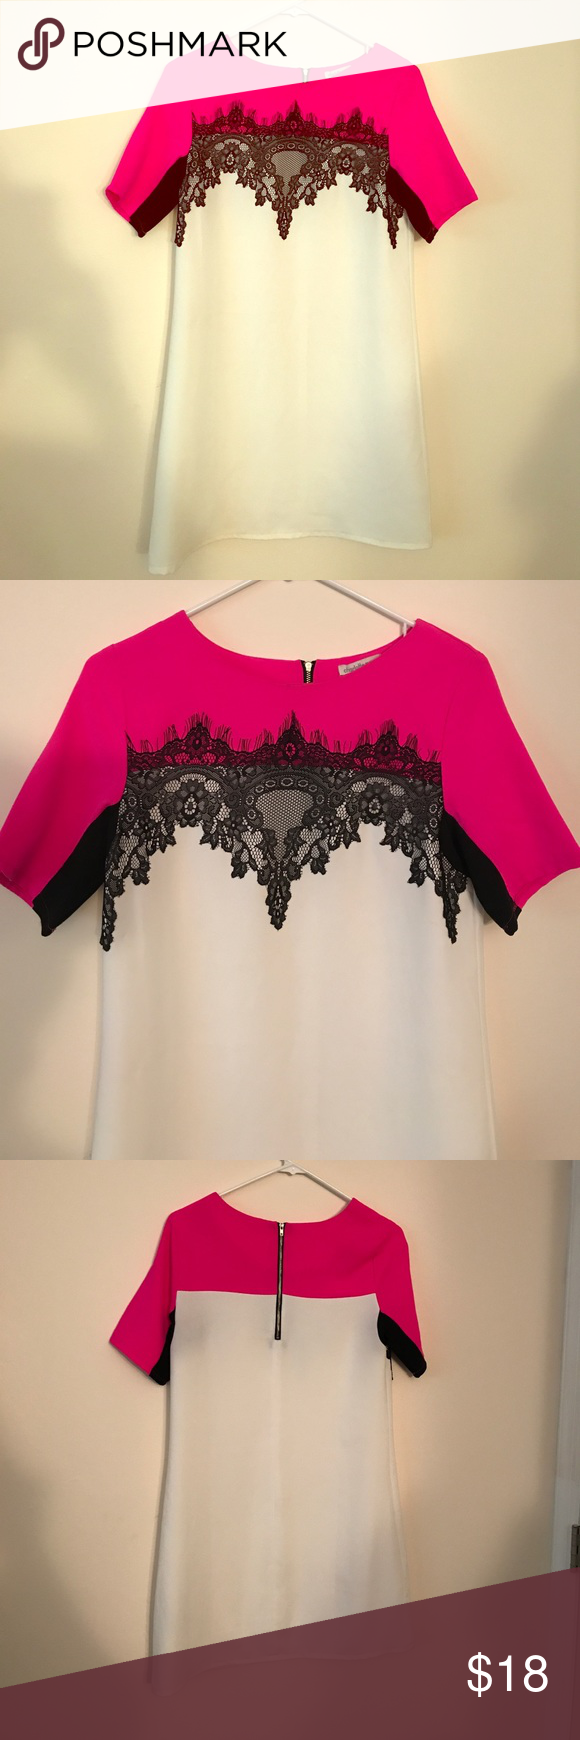 Chic dress White and pink dress with black lace accent Charlotte Russe Dresses